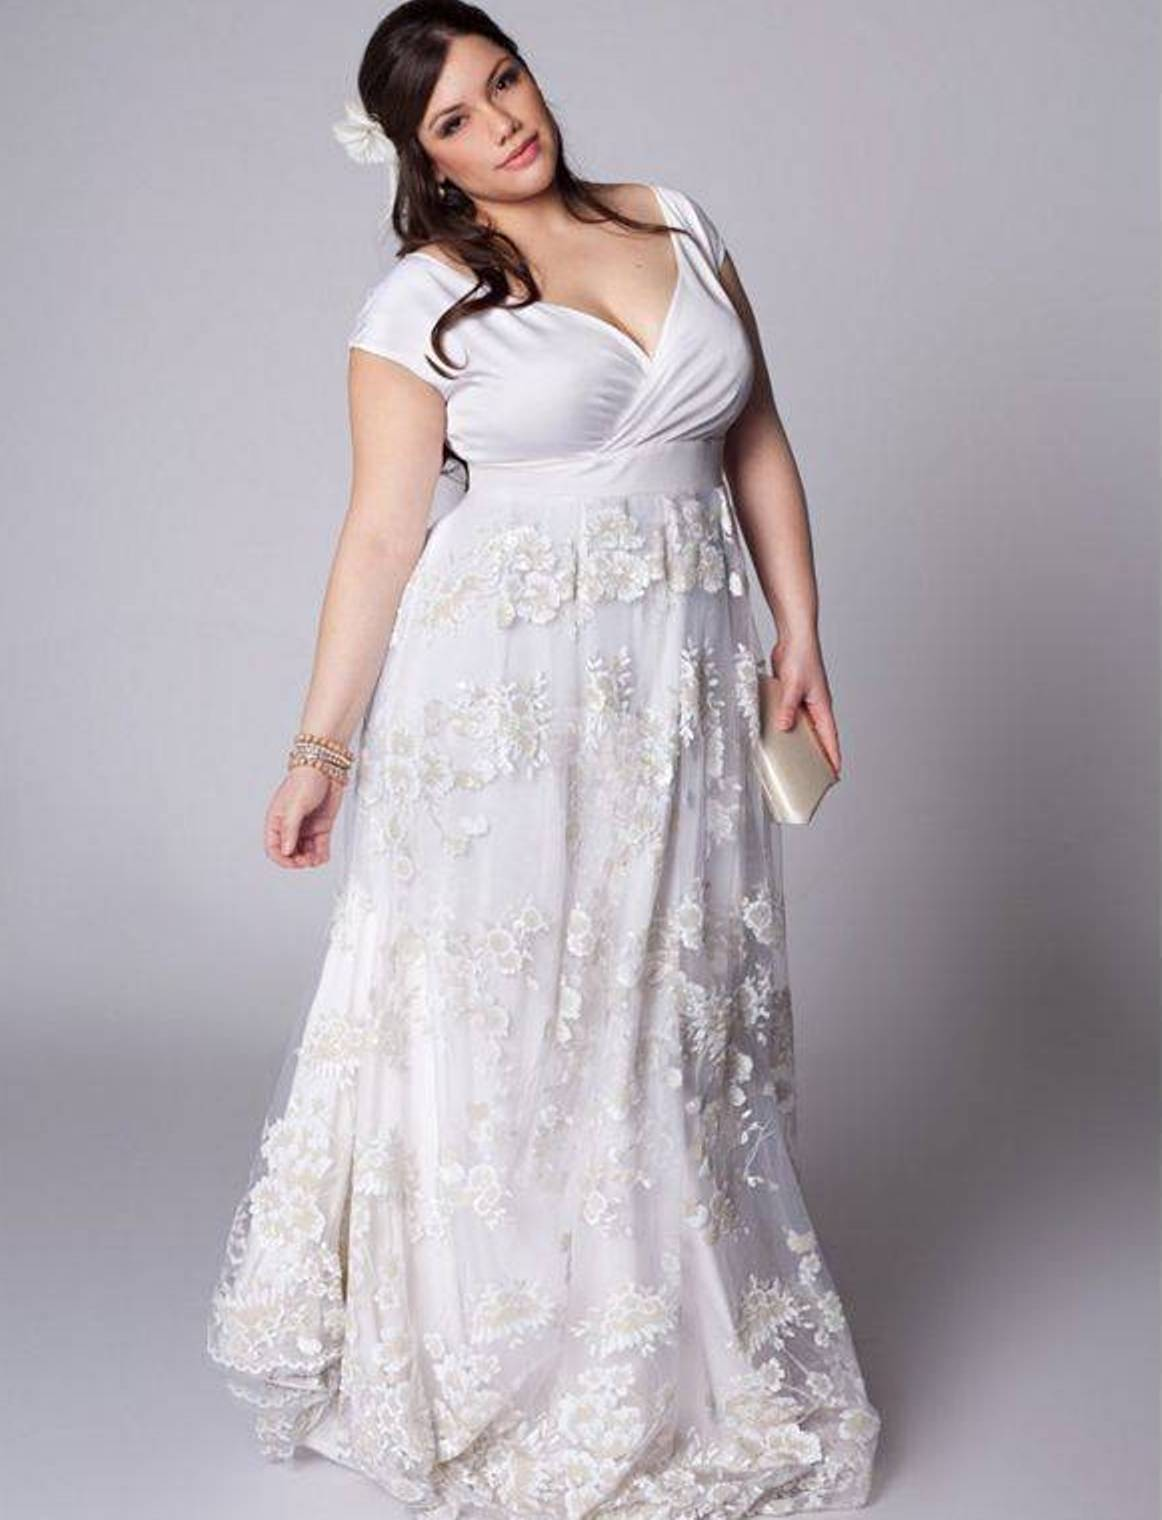 Plus Size Wedding Dresses In Cape Town | Lixnet AG